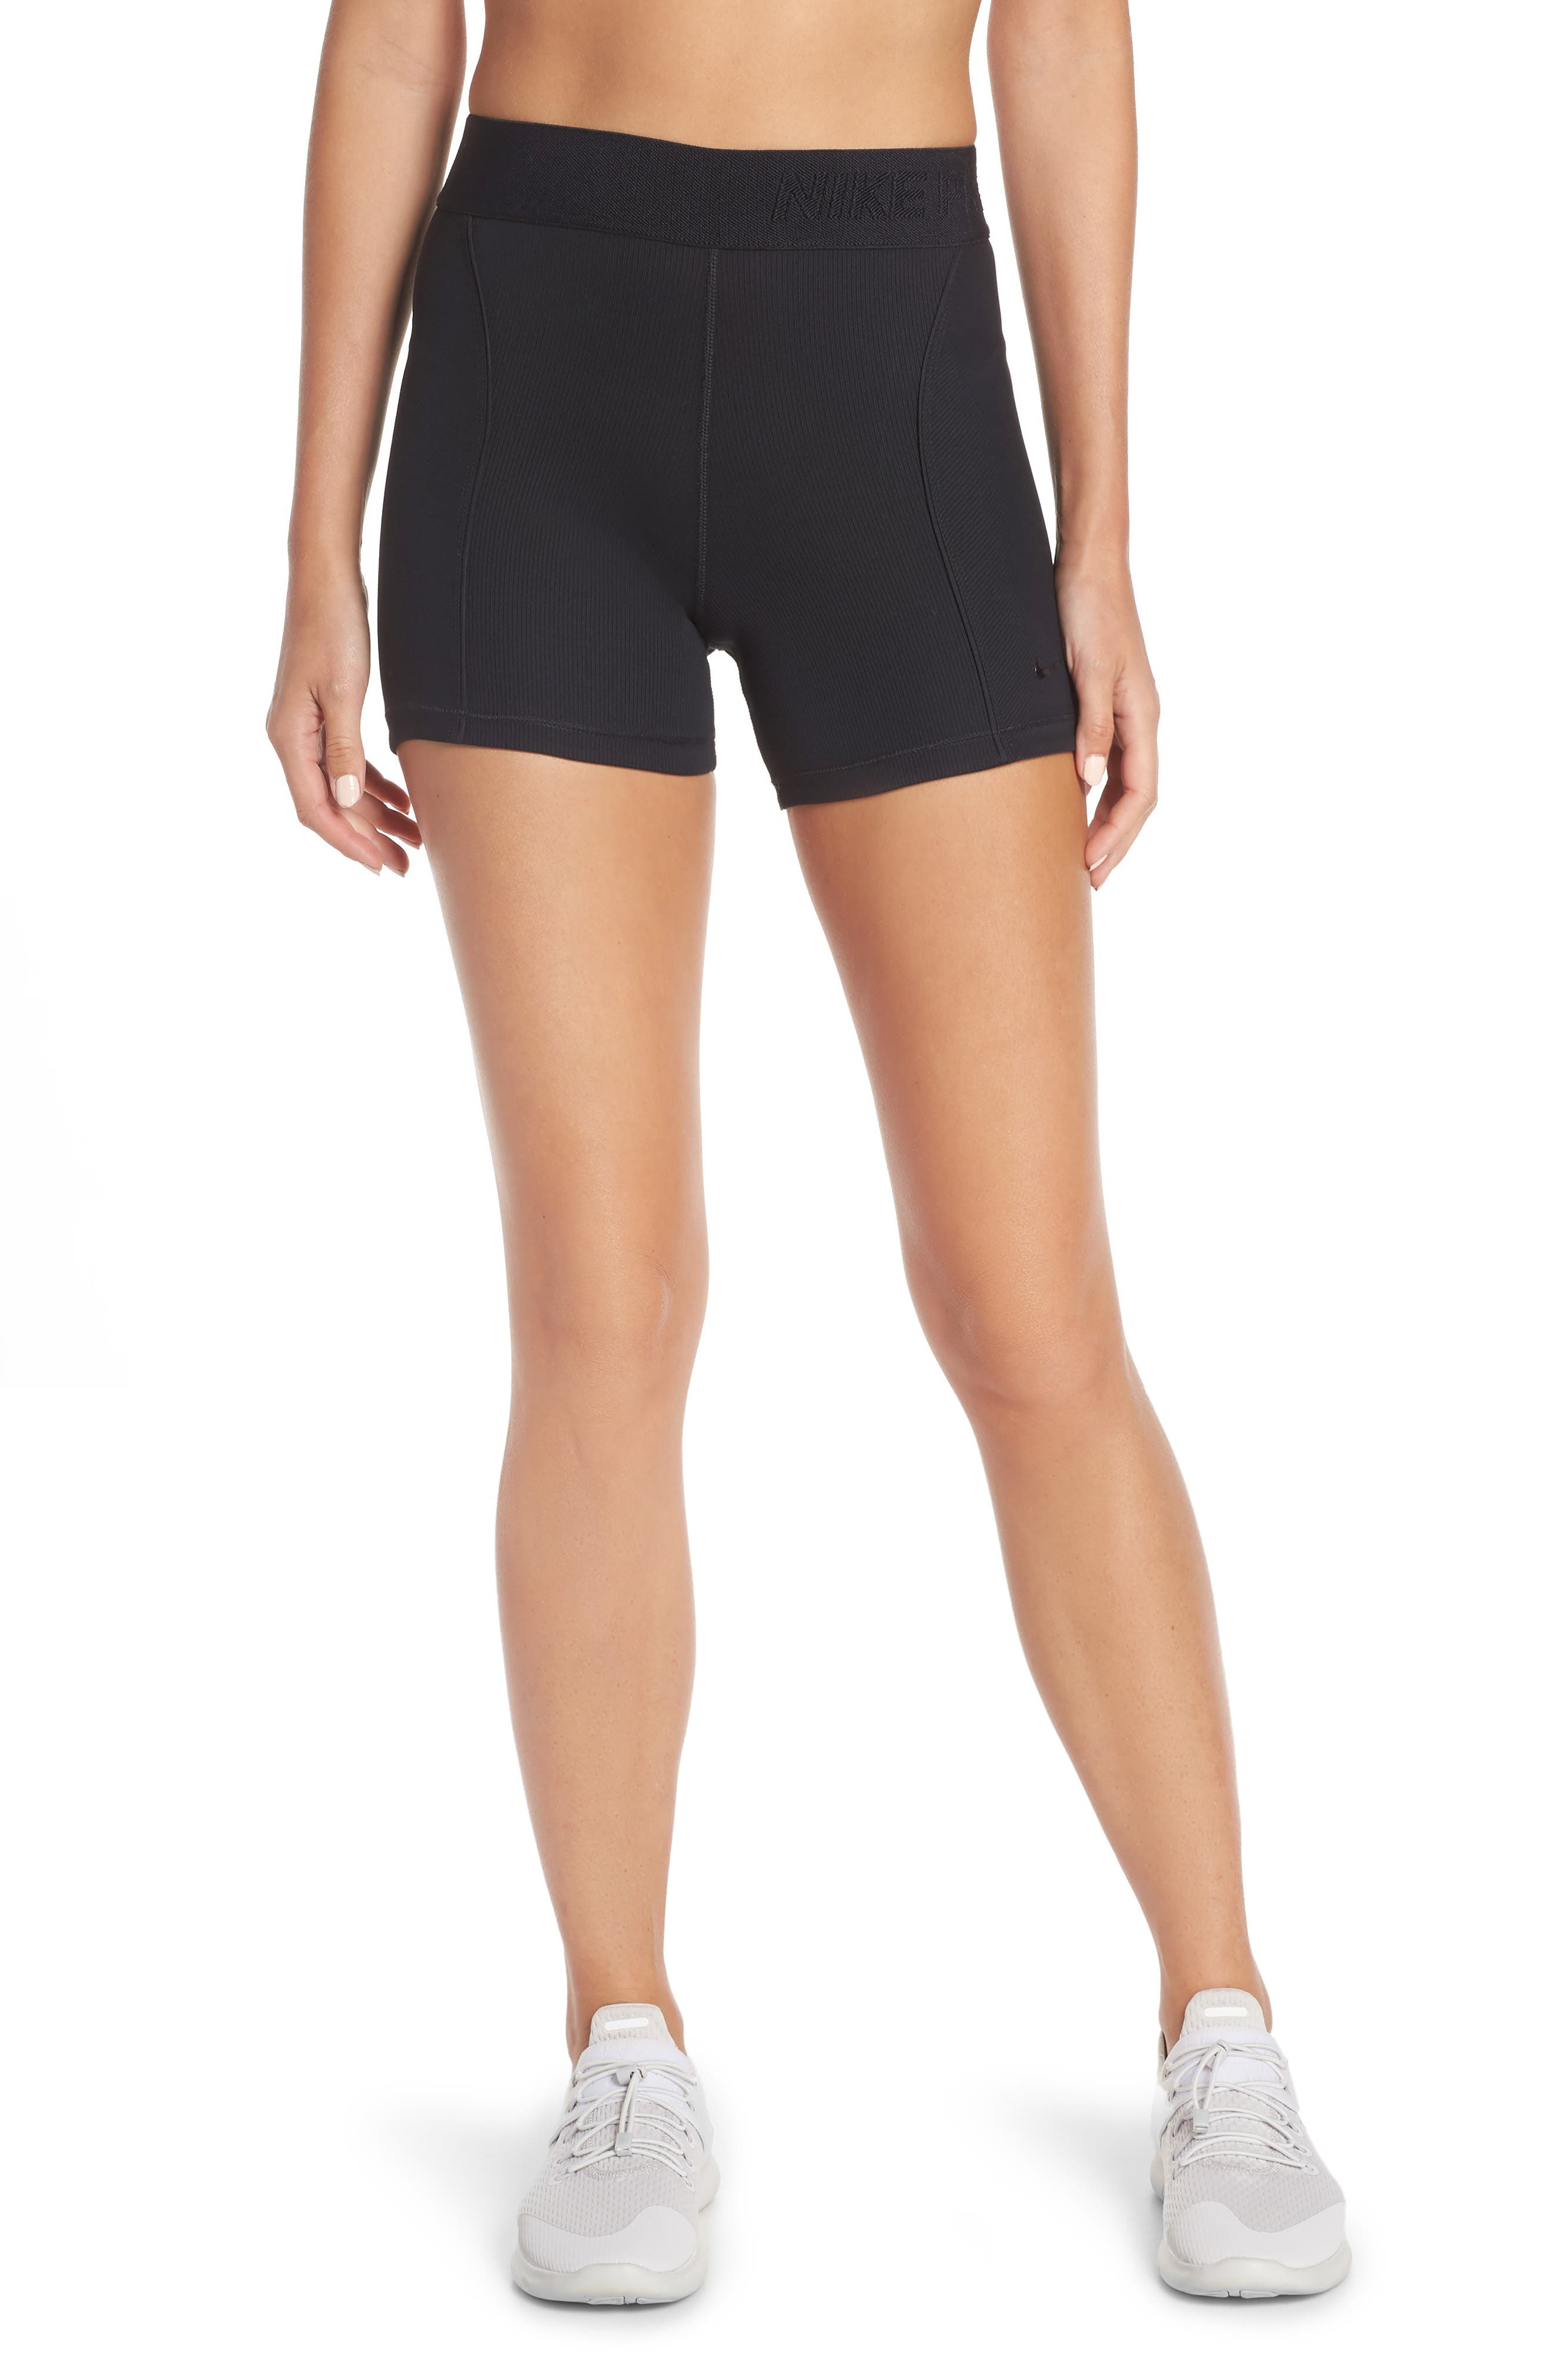 Pro Hyper Cool Women's Ribbed Shorts by Nike